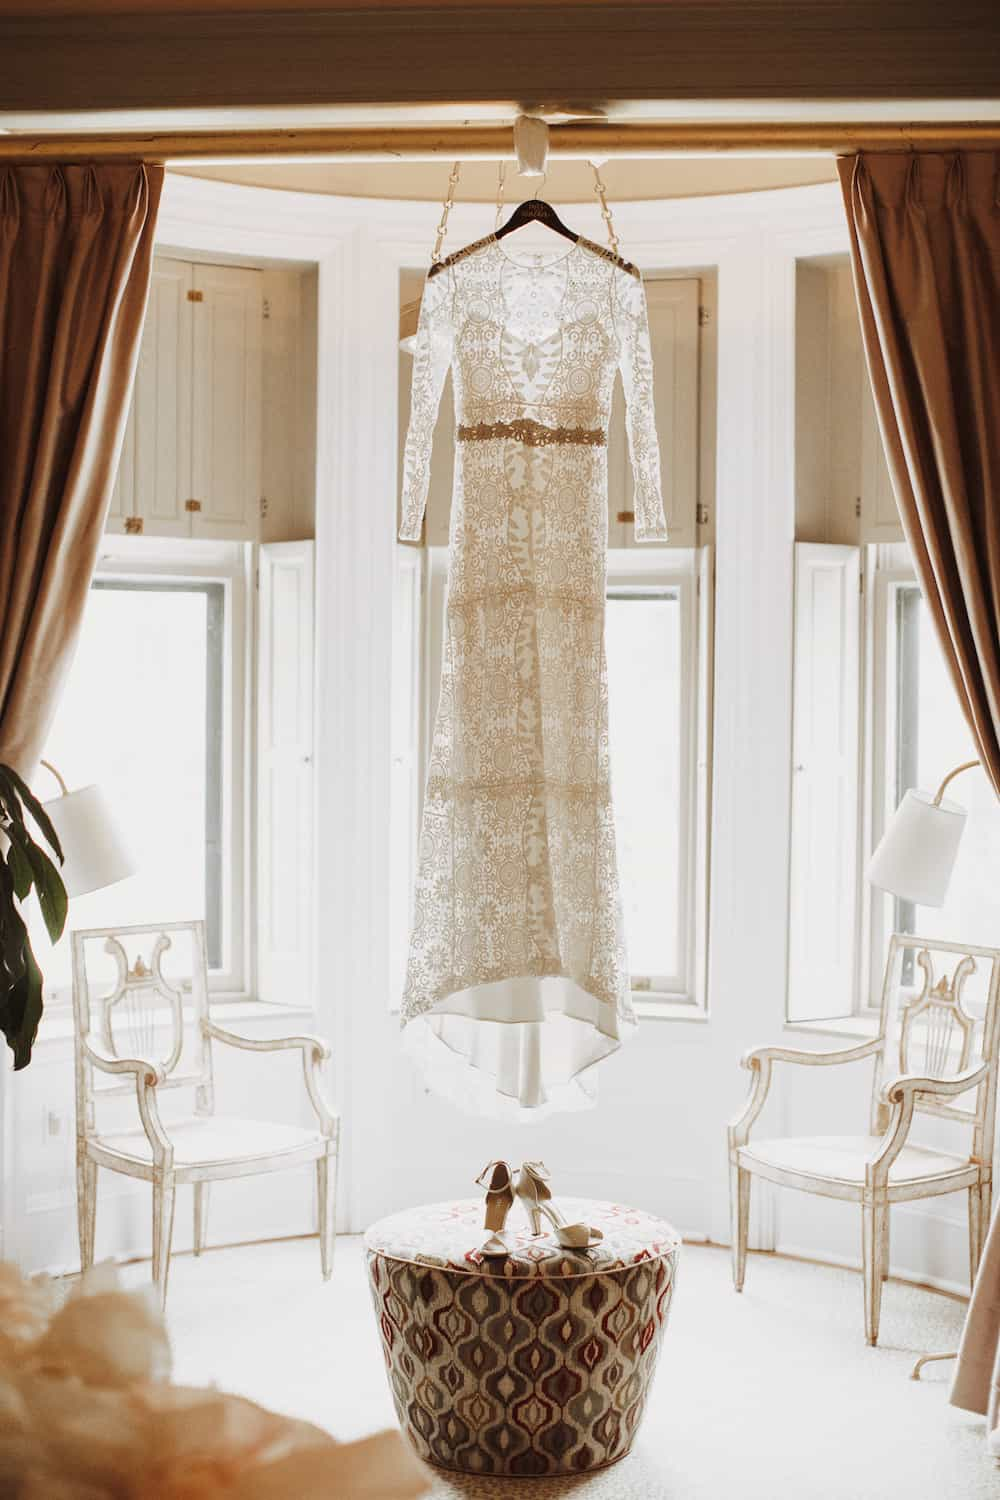 Wedding dress hangs in the lit bridal space. Photography from The Ivy Baltimore.